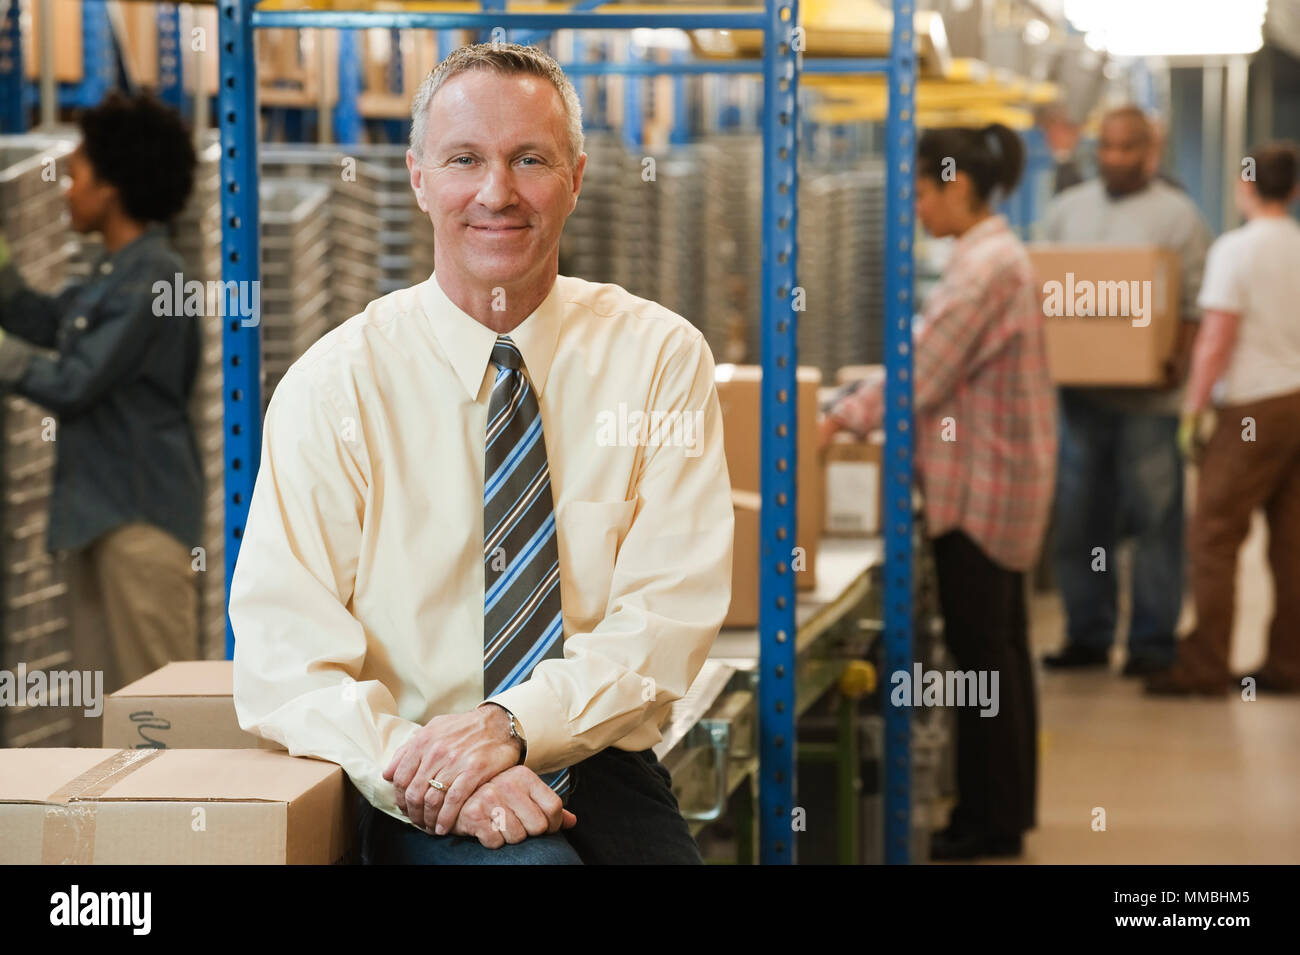 Portrait of a male caucasian executive in a dress shirt and tie  next to a motorized converyor system in a large distribution warehouse. - Stock Image